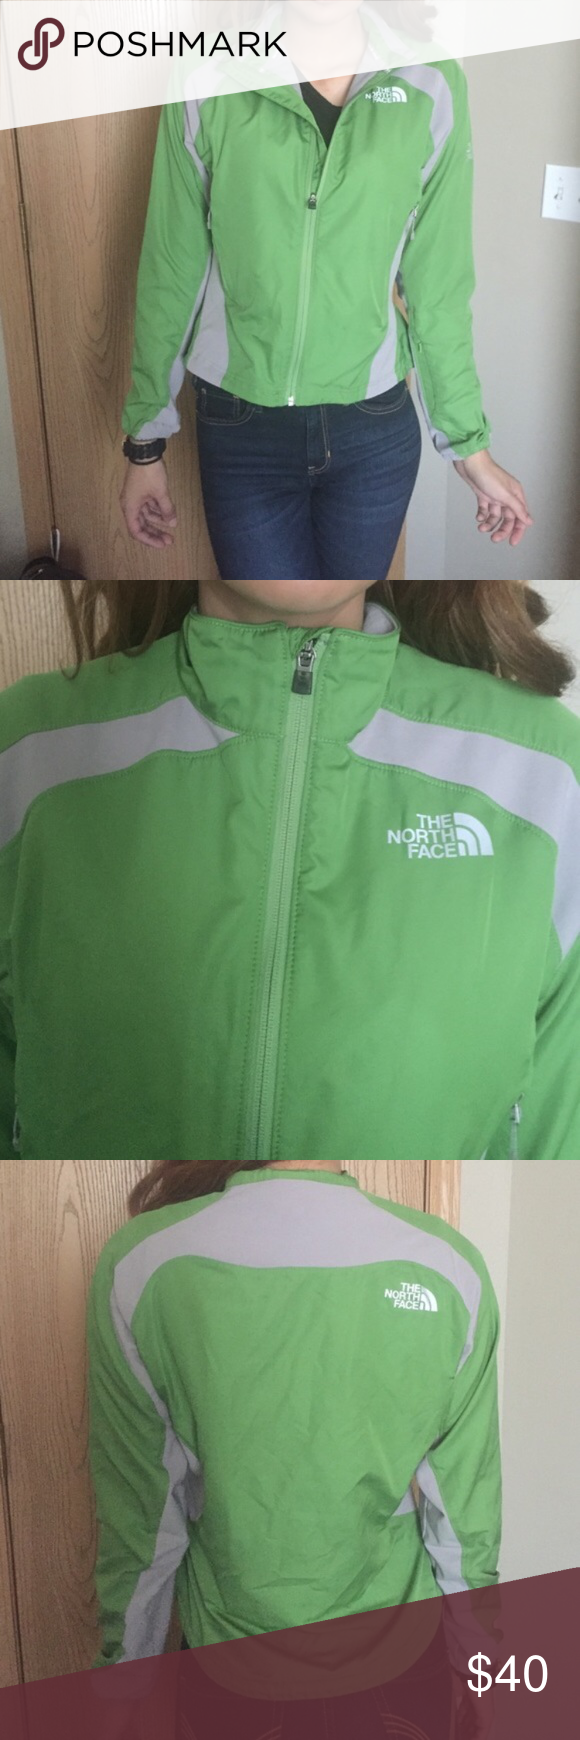 Lime Green North Face Jacket Green North Face Jacket North Face Jacket Clothes Design [ 1740 x 580 Pixel ]